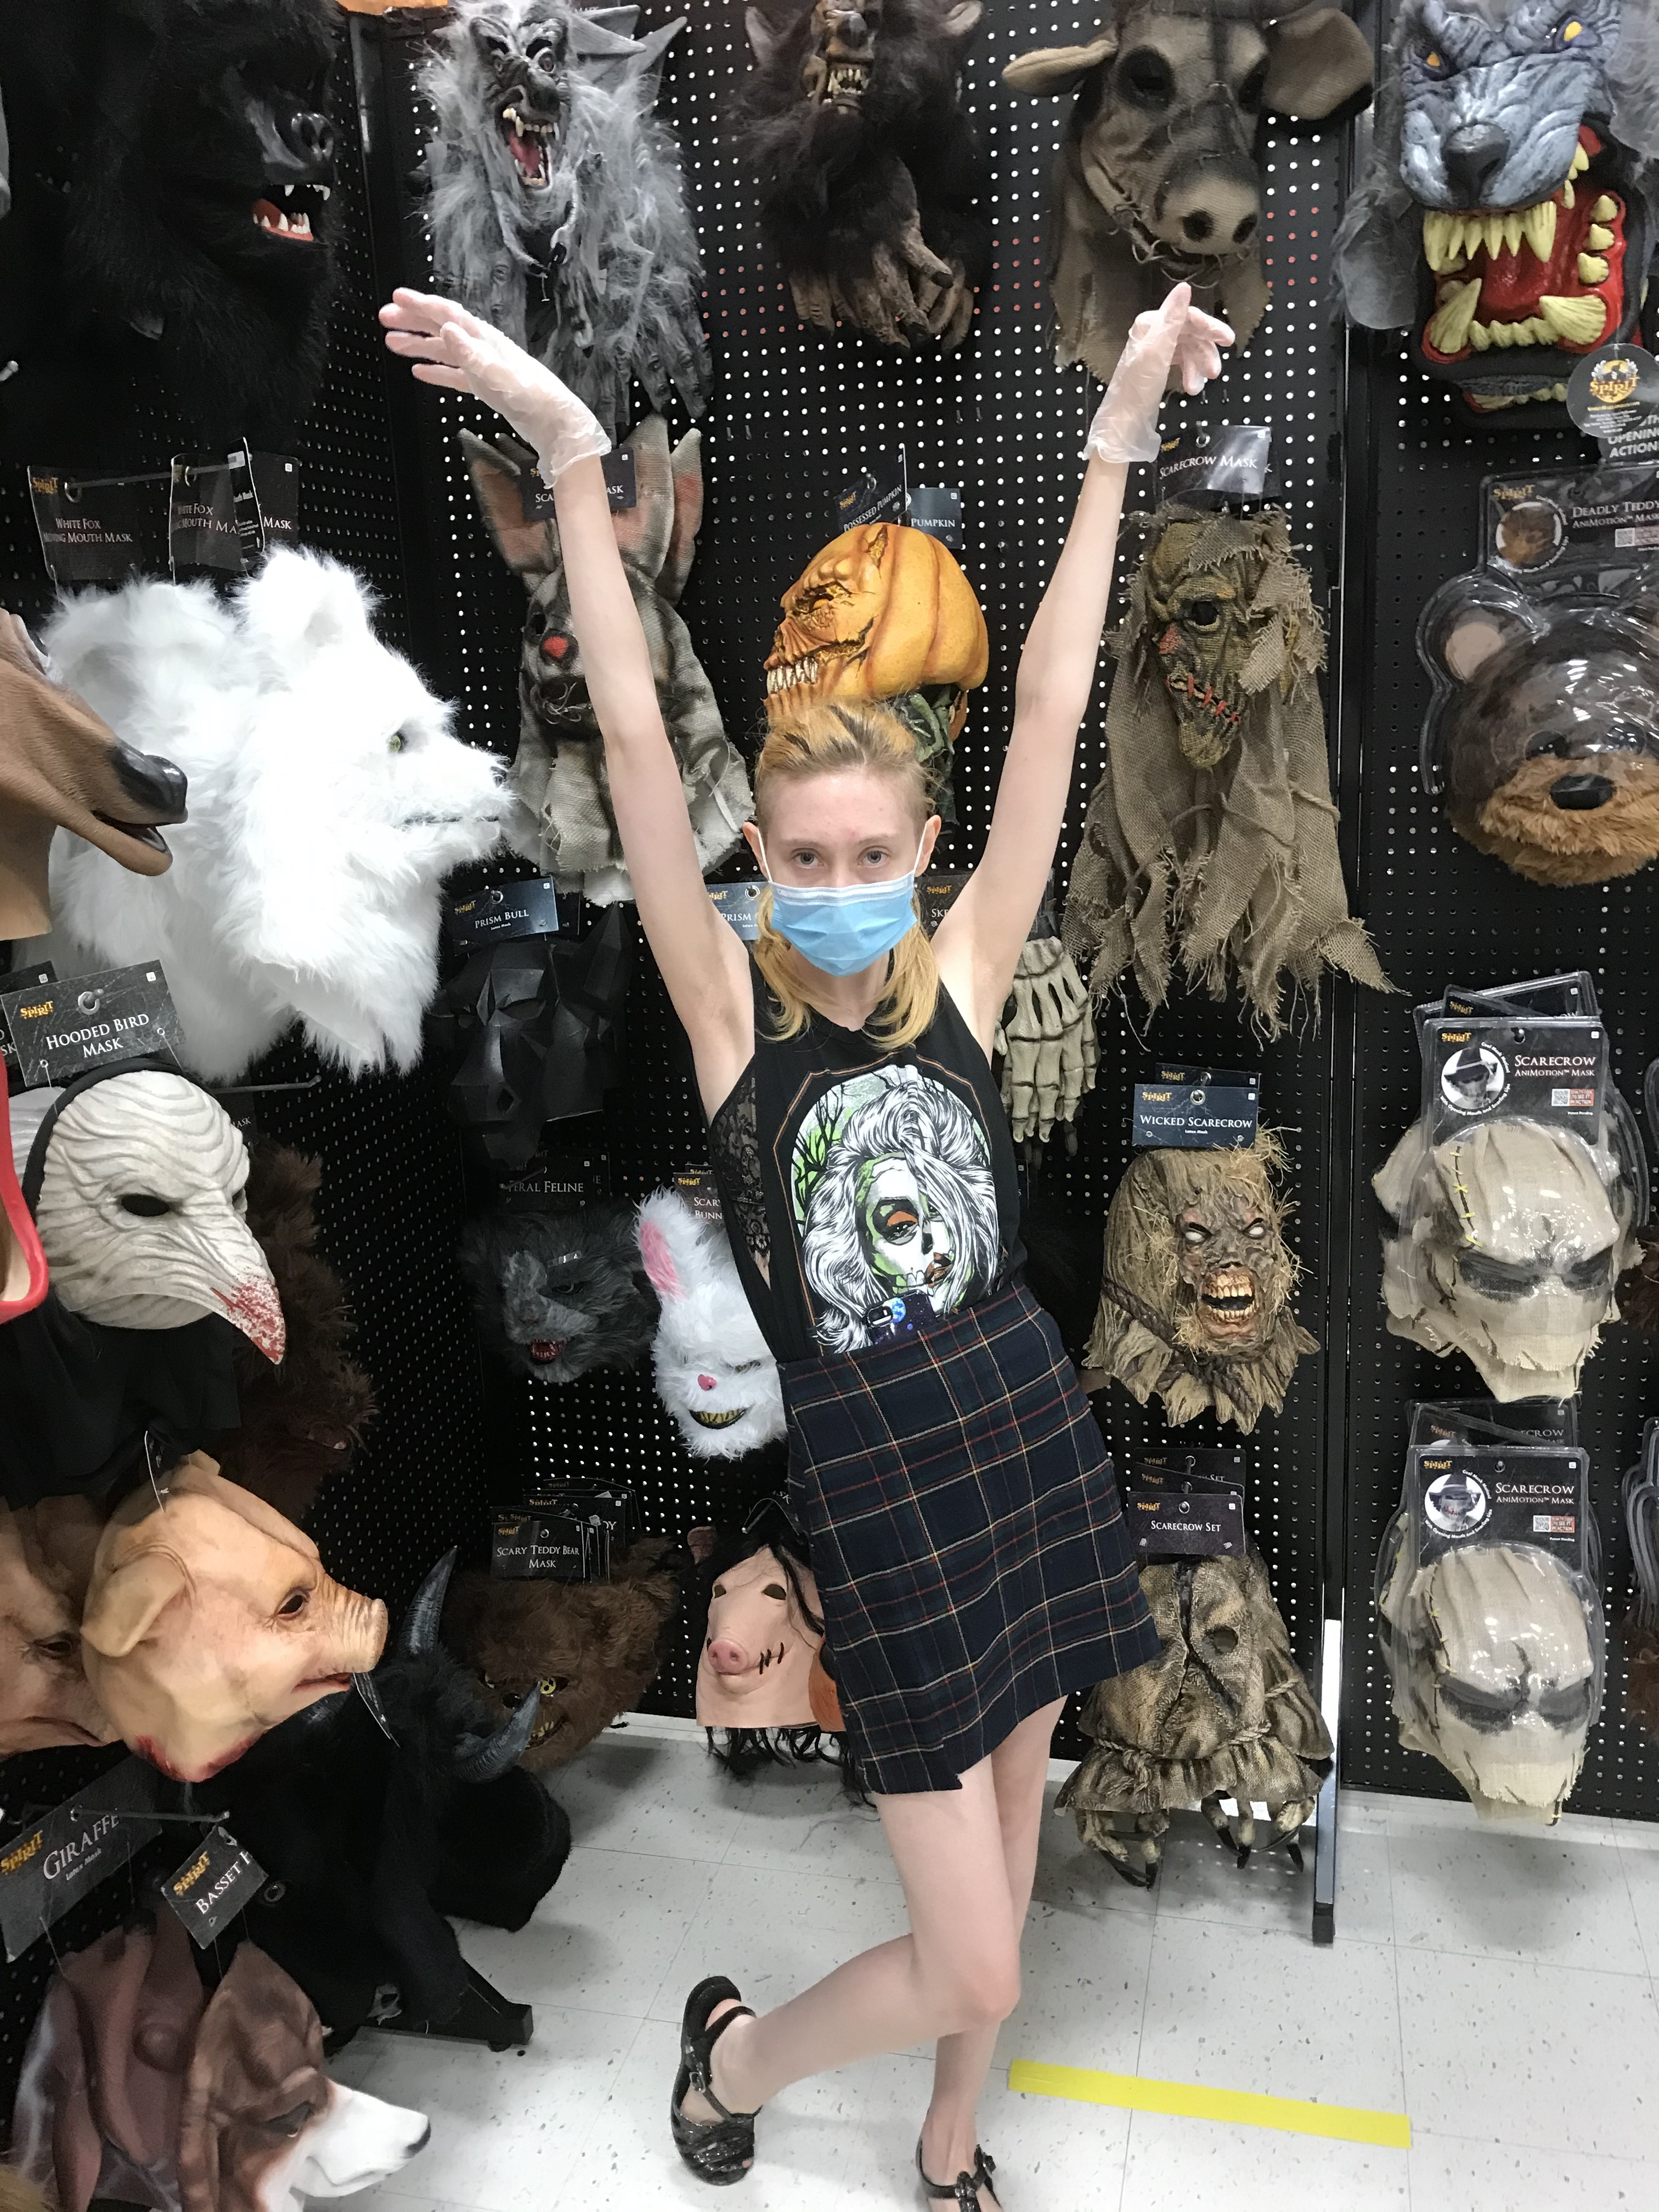 <strong>Author Kate Hochswender, in her happy place: The horror mask display at Spirit Halloween in Kingston, N.Y. <em>P</em></strong><em>hoto by Cynthia Hochswender</em>